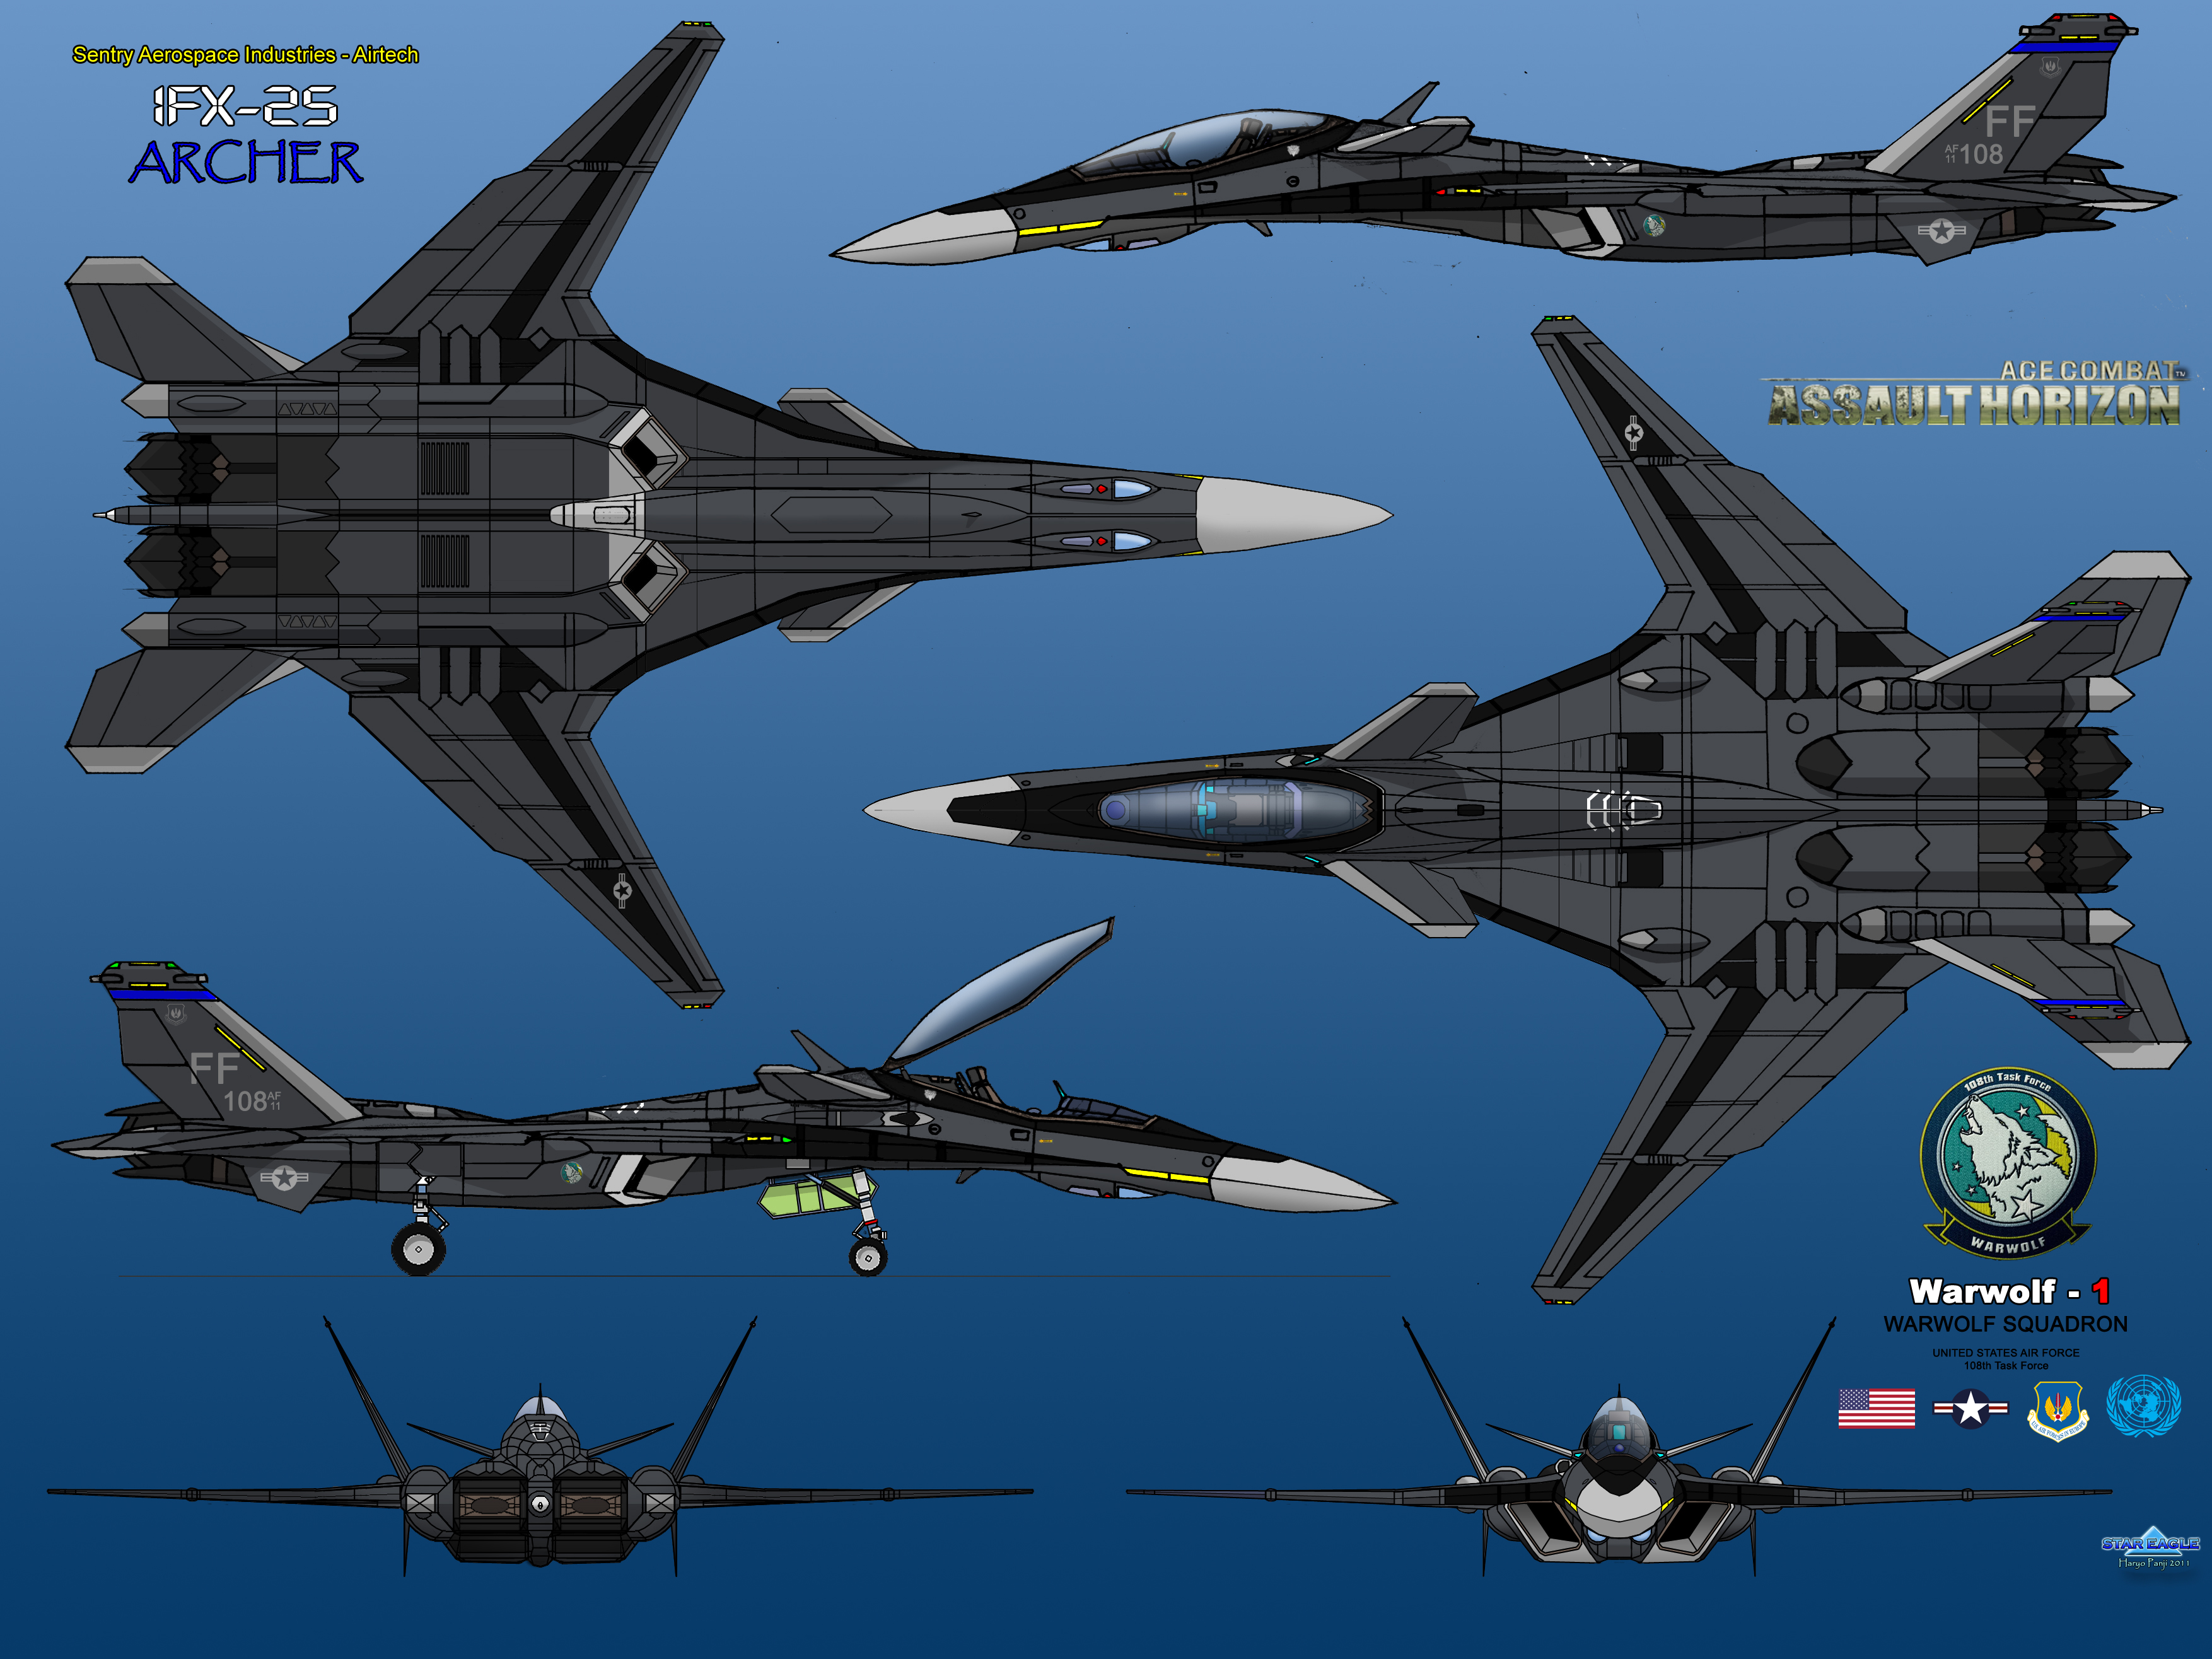 IFX-25 Archer Warwolf 01 by haryopanji